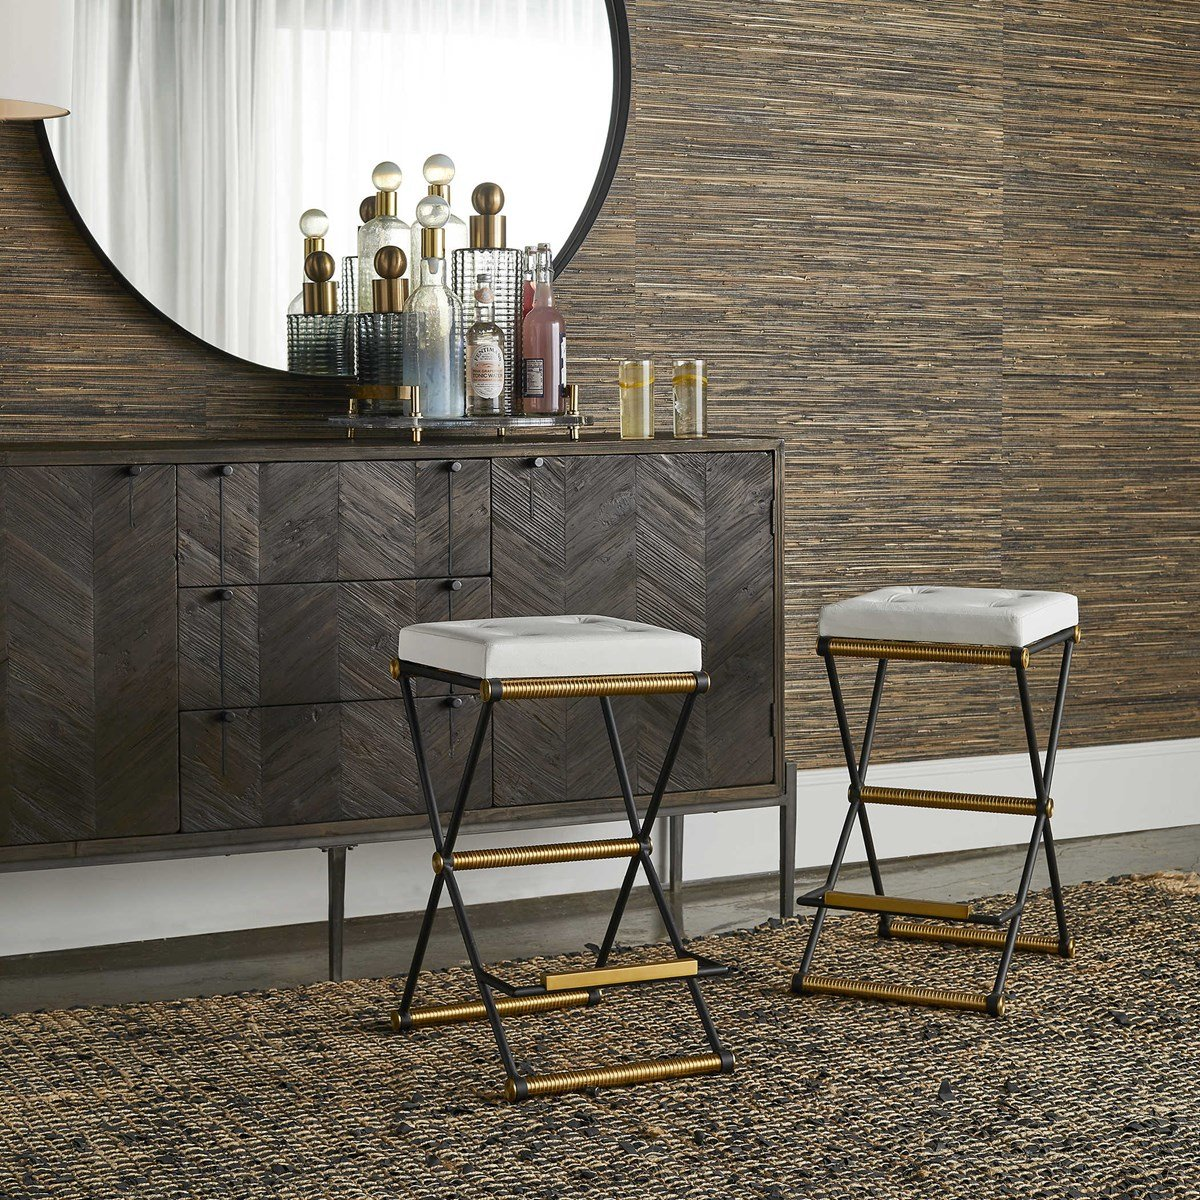 Retro barstools with gold detailing would fit perfectly in any granny chic lounge, bar, or kitchen